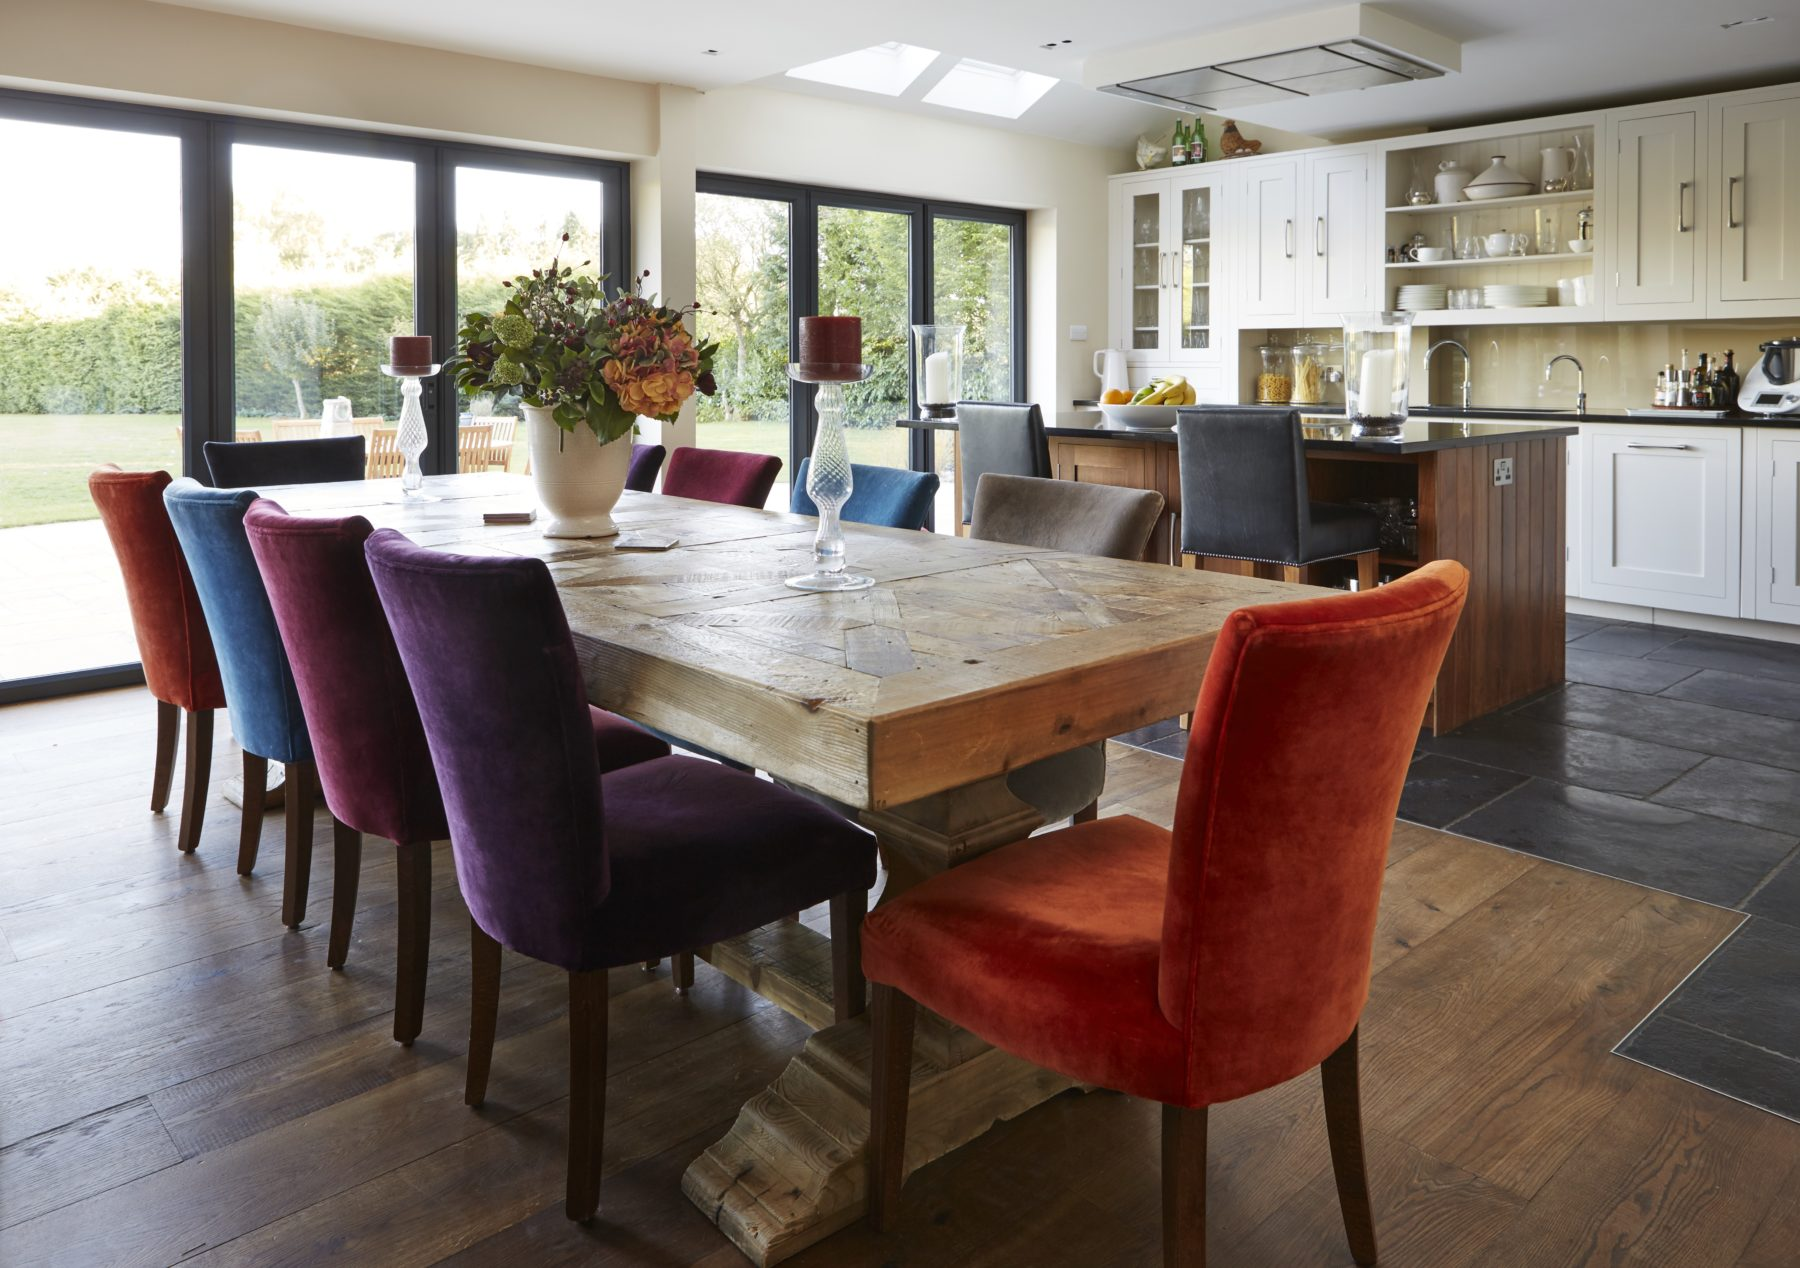 wood and charcoal floor contemporary dining room and kitchen design Watlington